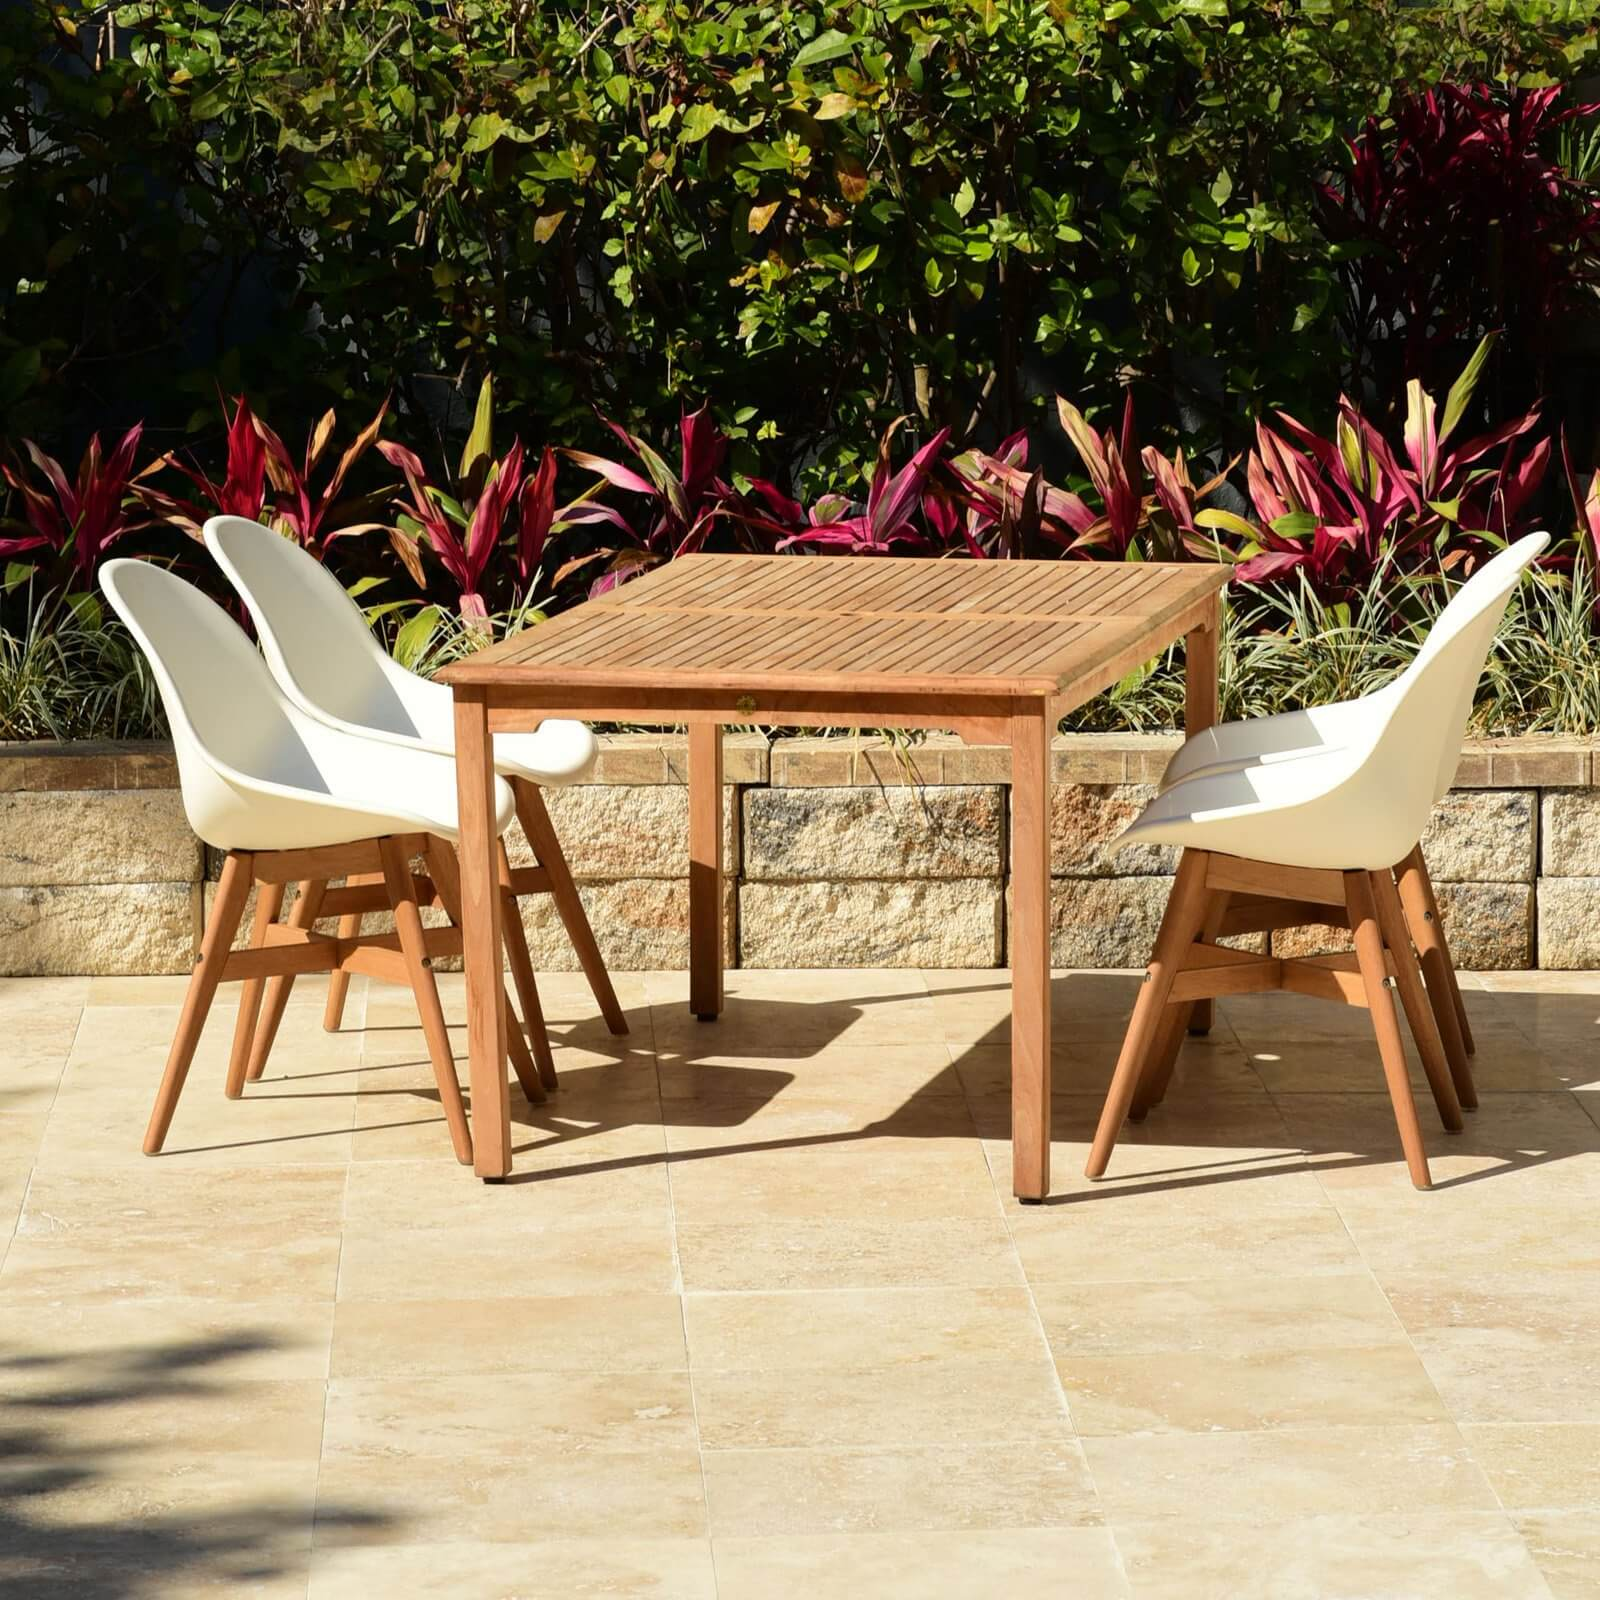 RECTANGULAR DINING SET OUTDOOR FOR SMALL SPACES